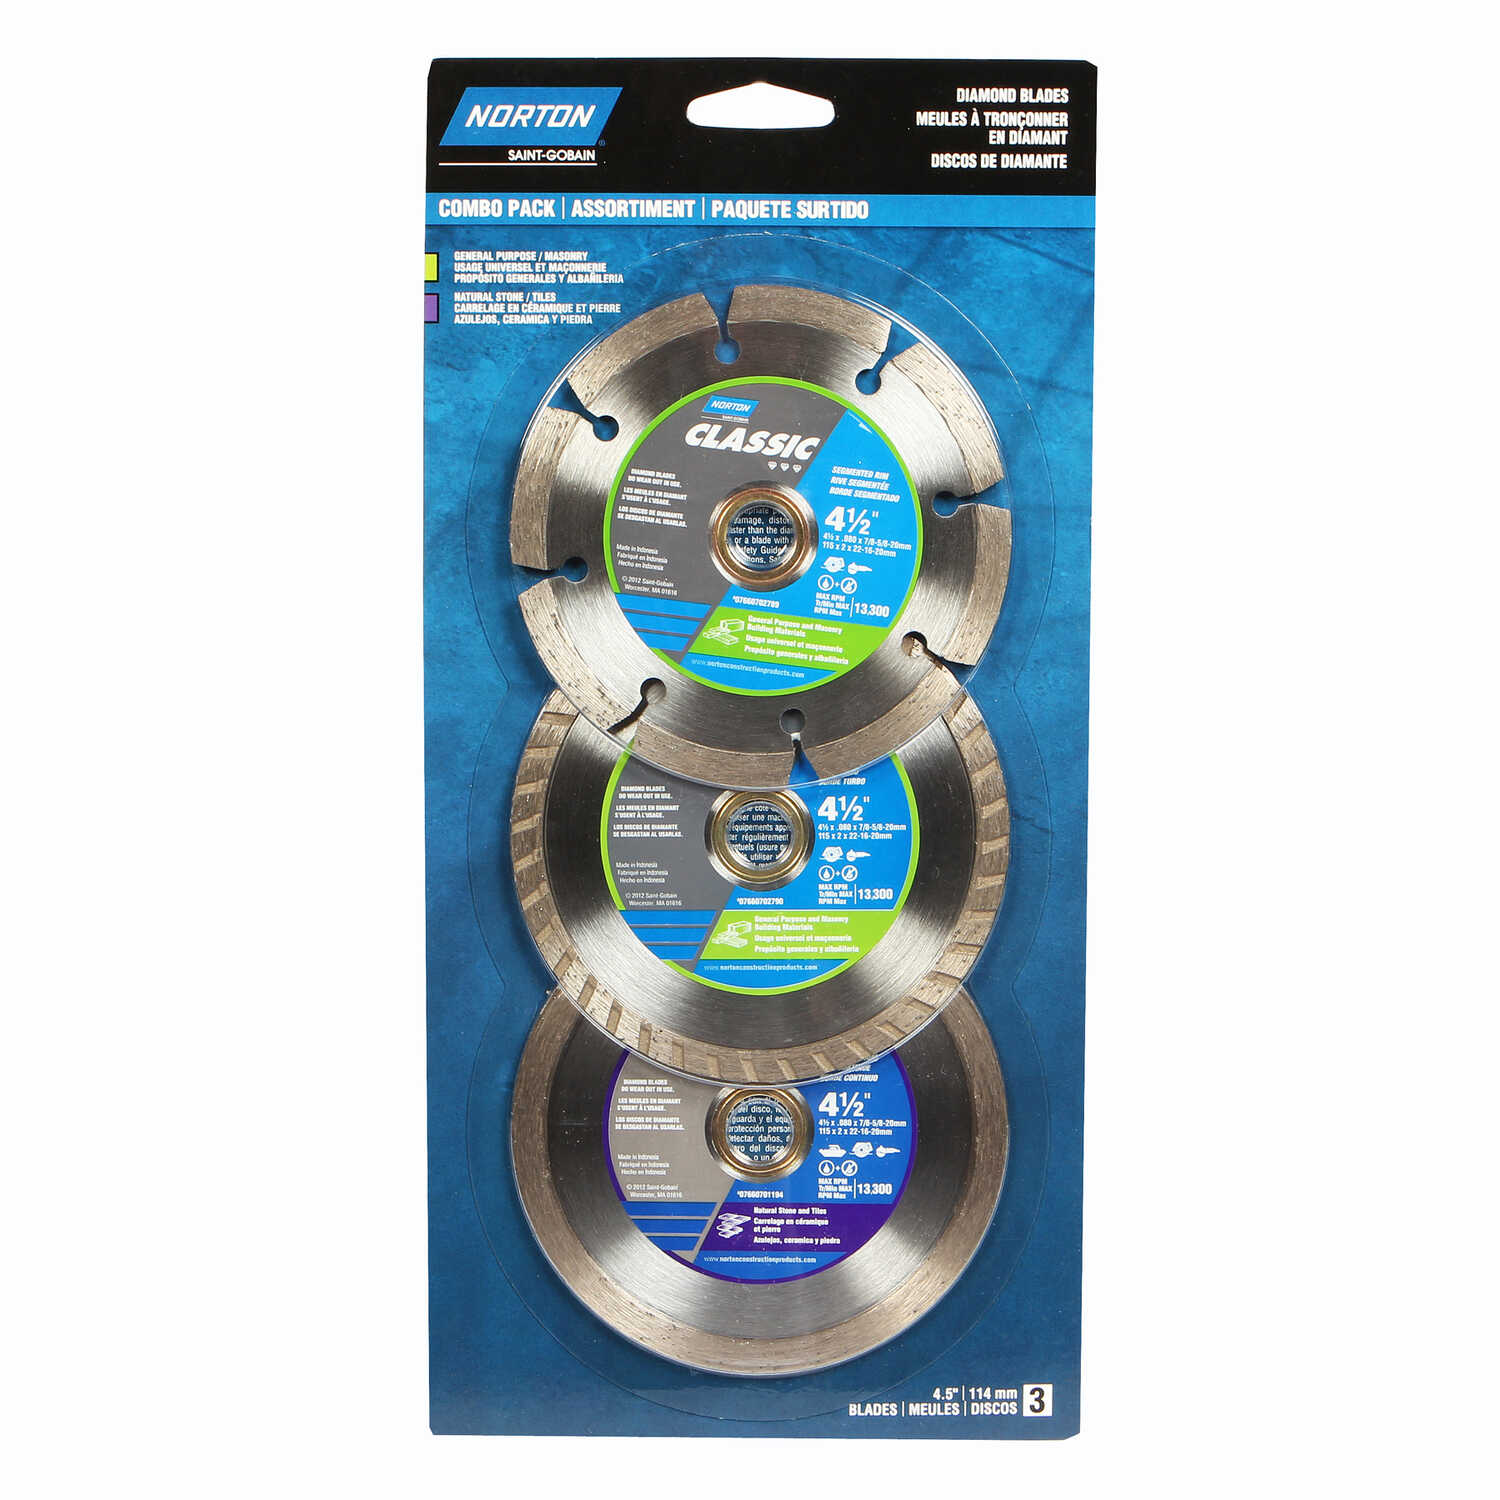 Norton  Classic  0.08 in.  Diamond  5/8 and 7/8 in.  3 pk Saw Blade Combo Pack  4-1/2